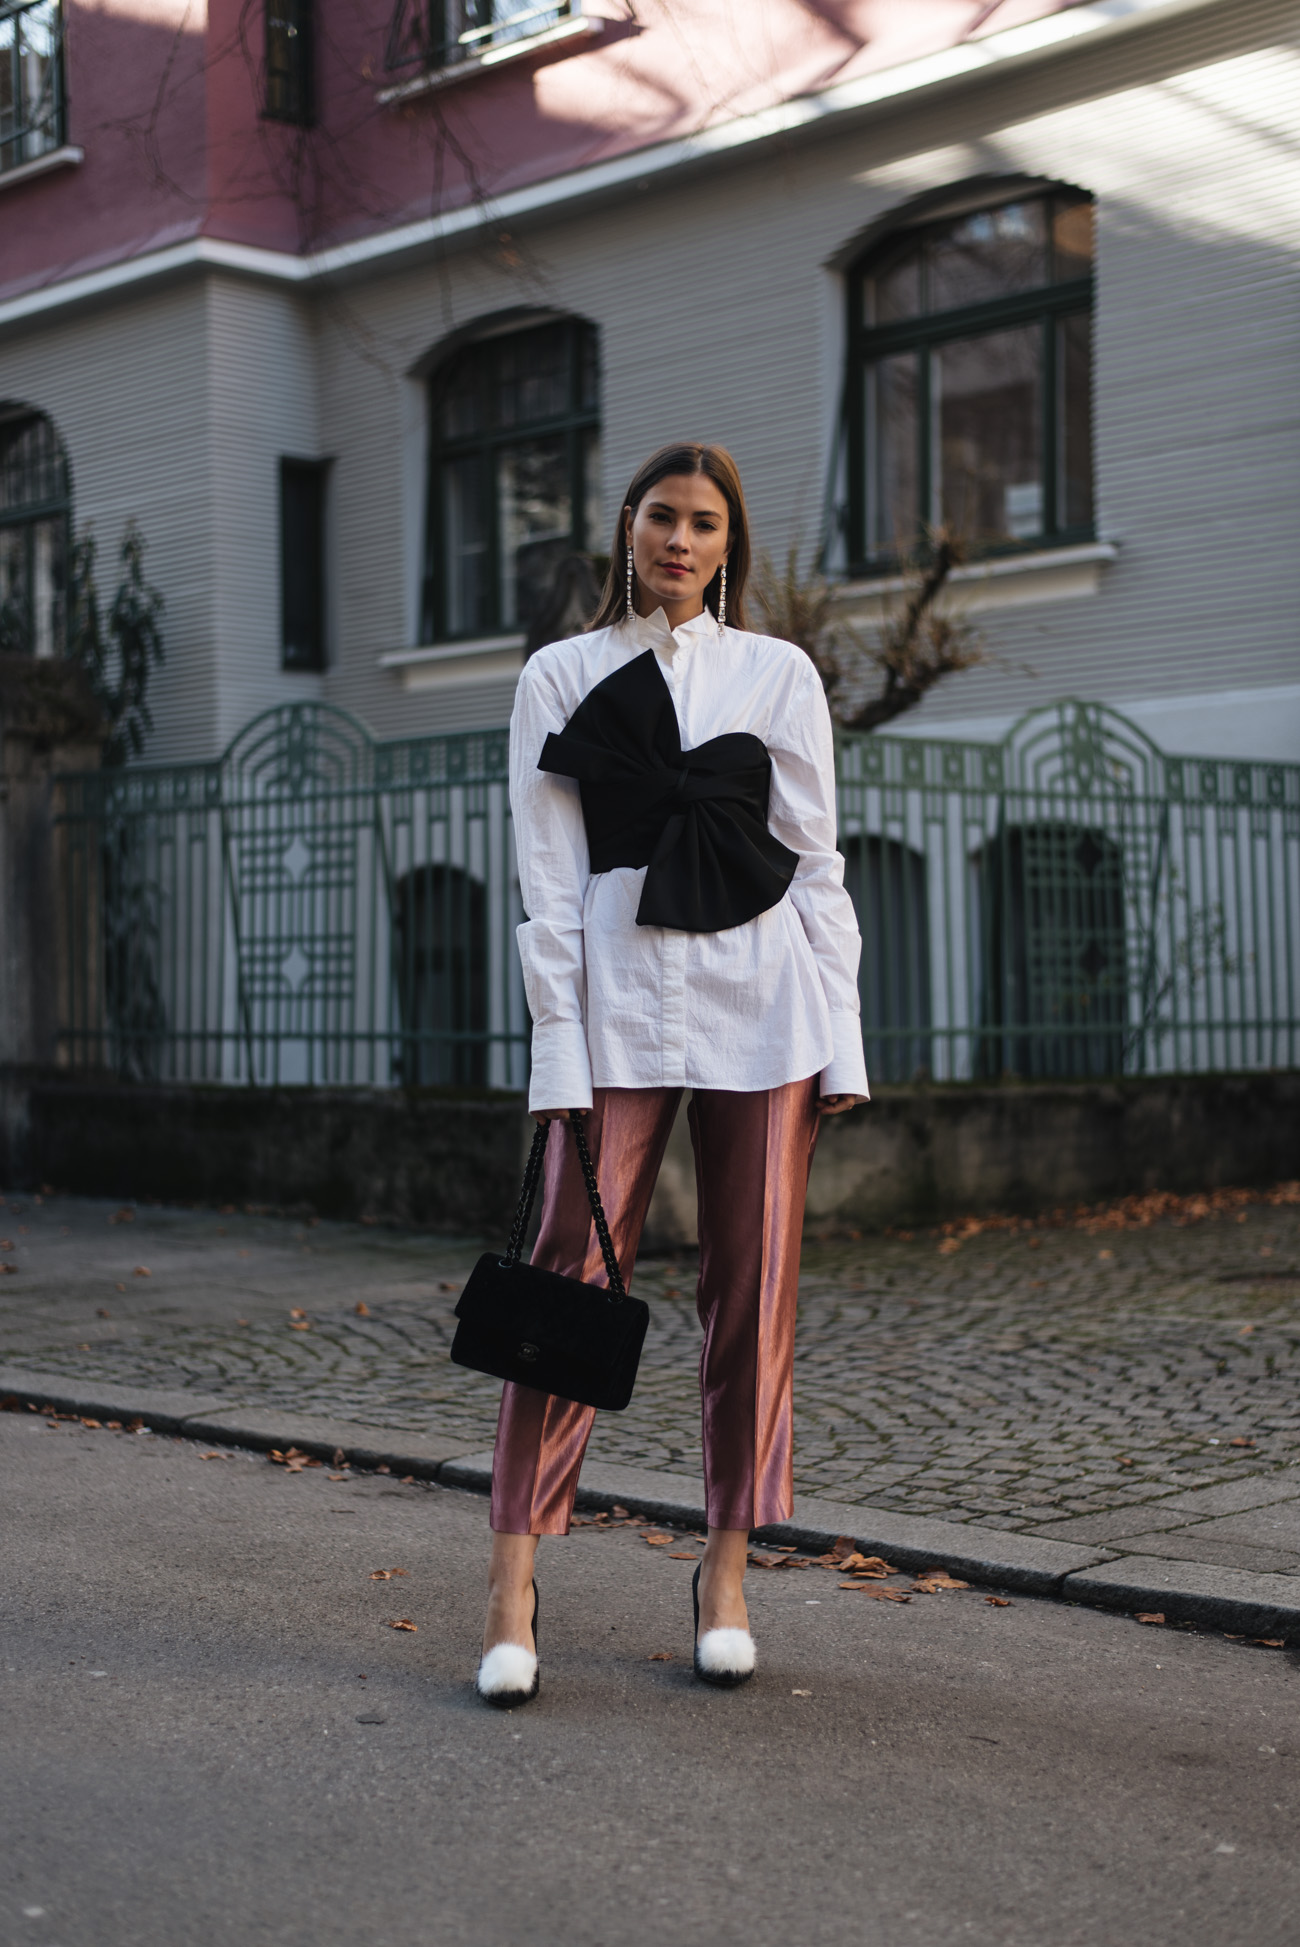 german-fashion-beauty-lifesyle-blogger-influencer-high-end-luxury-nina-schwichtenberg-fashiioncarpet-